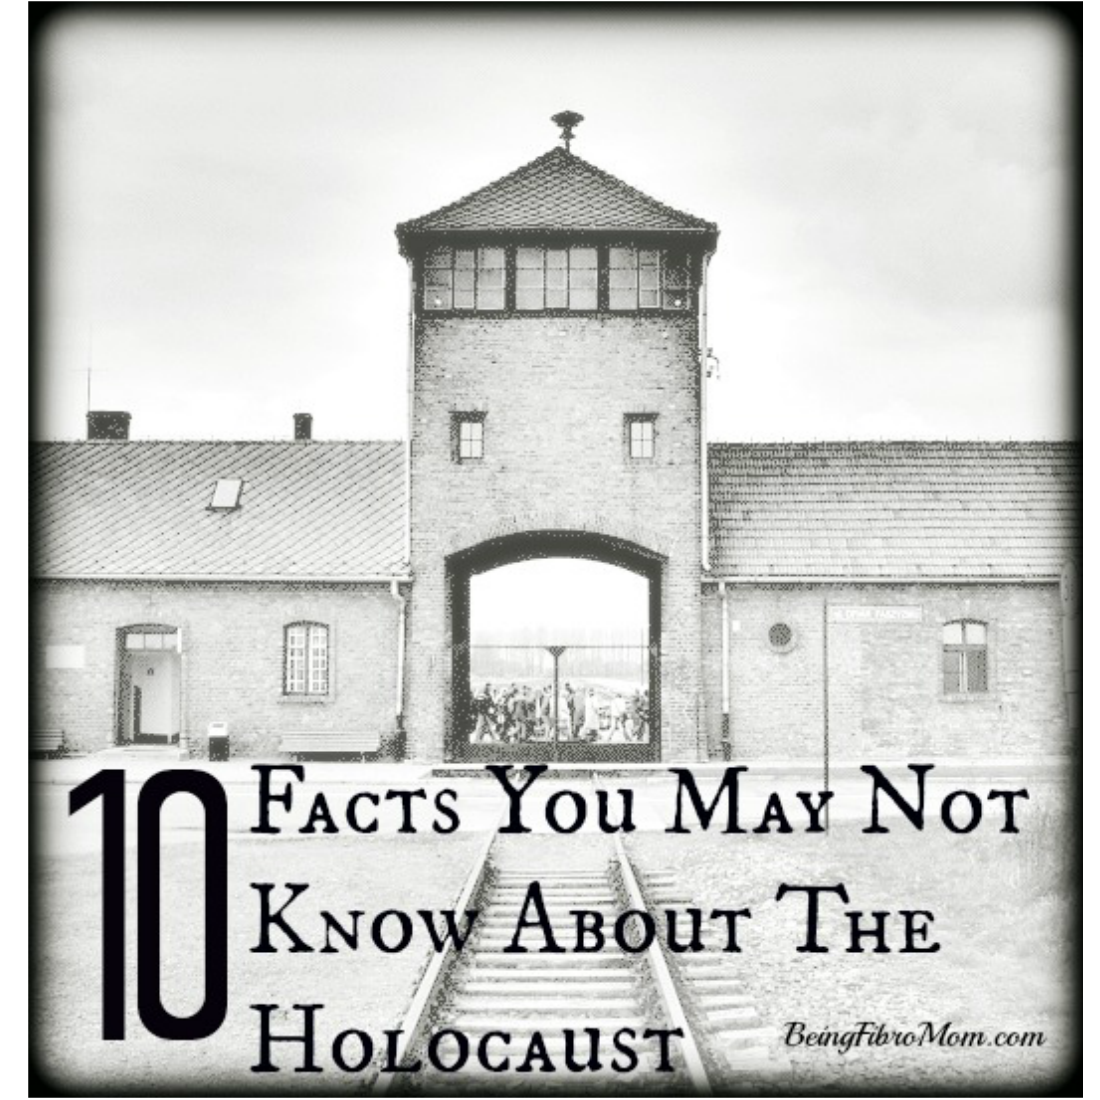 10 facts you may not know about the Holocaust #Holocaust #beingfibromom